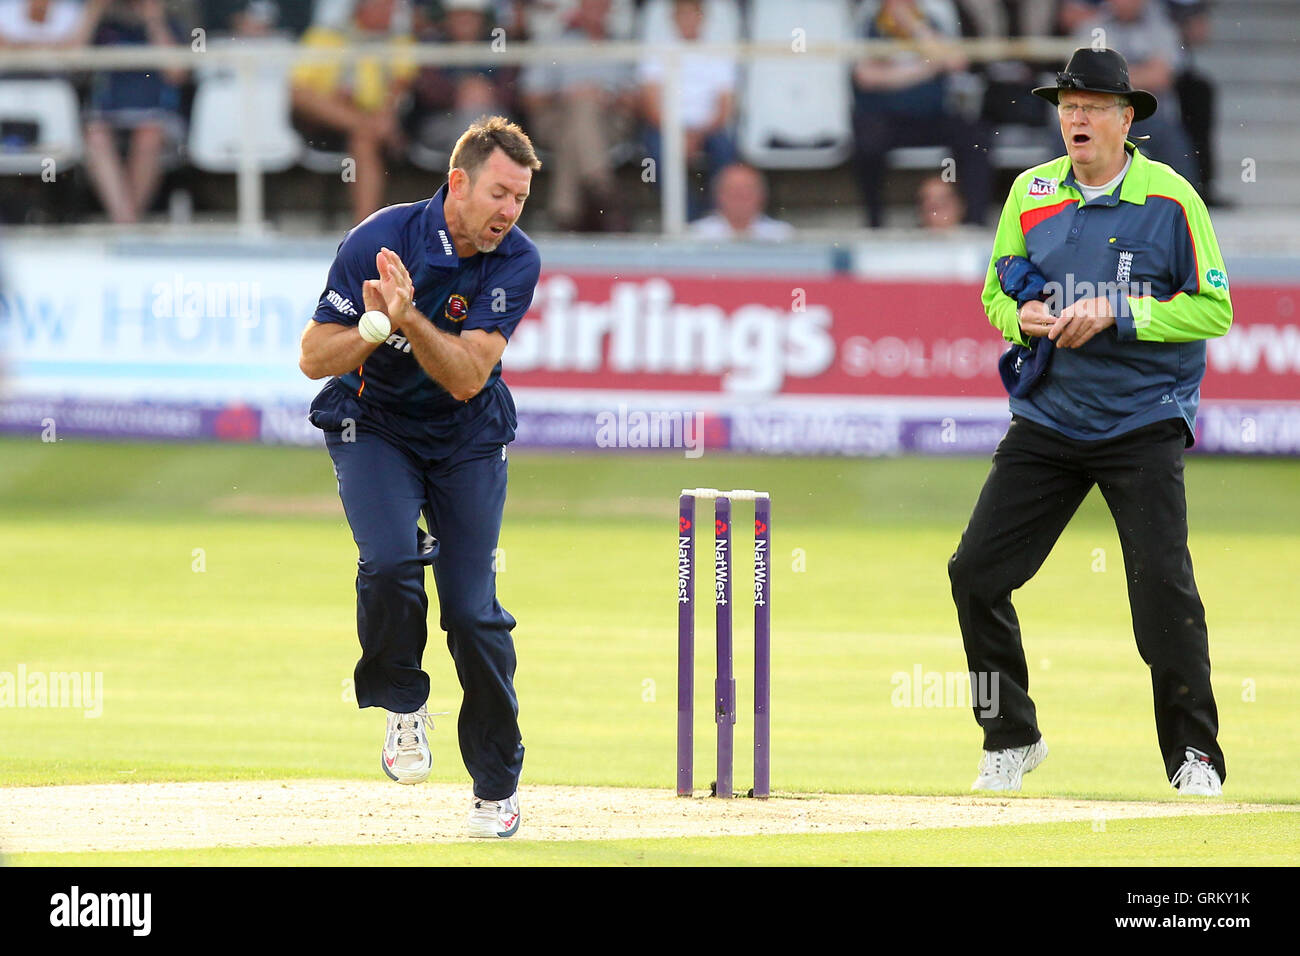 David Masters attempts evasive action but the ball hits him - Kent Spitfires vs Essex Eagles - Natwest T20 Blast - Stock Image